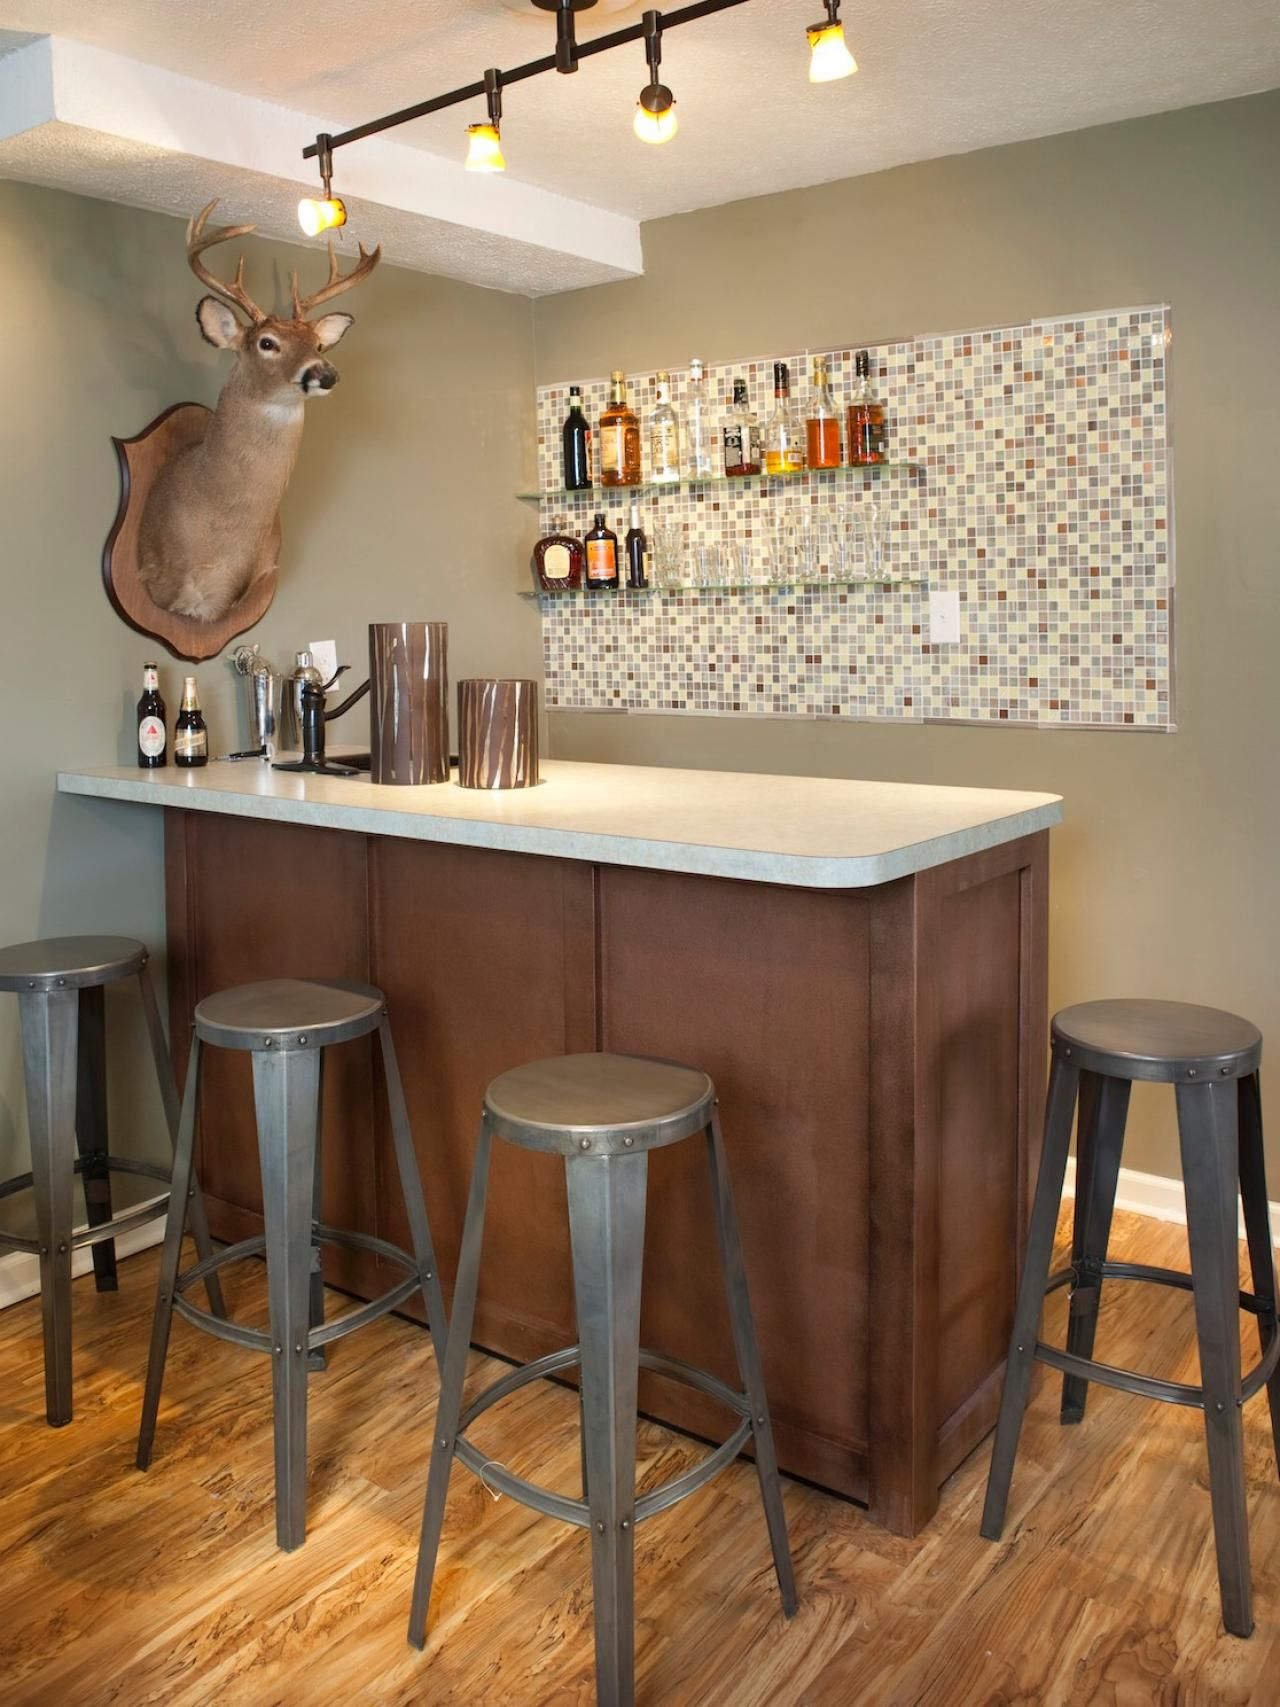 Home Bar Ideas: 89 Design Options | DIY Hausbar, Hausbars und ...